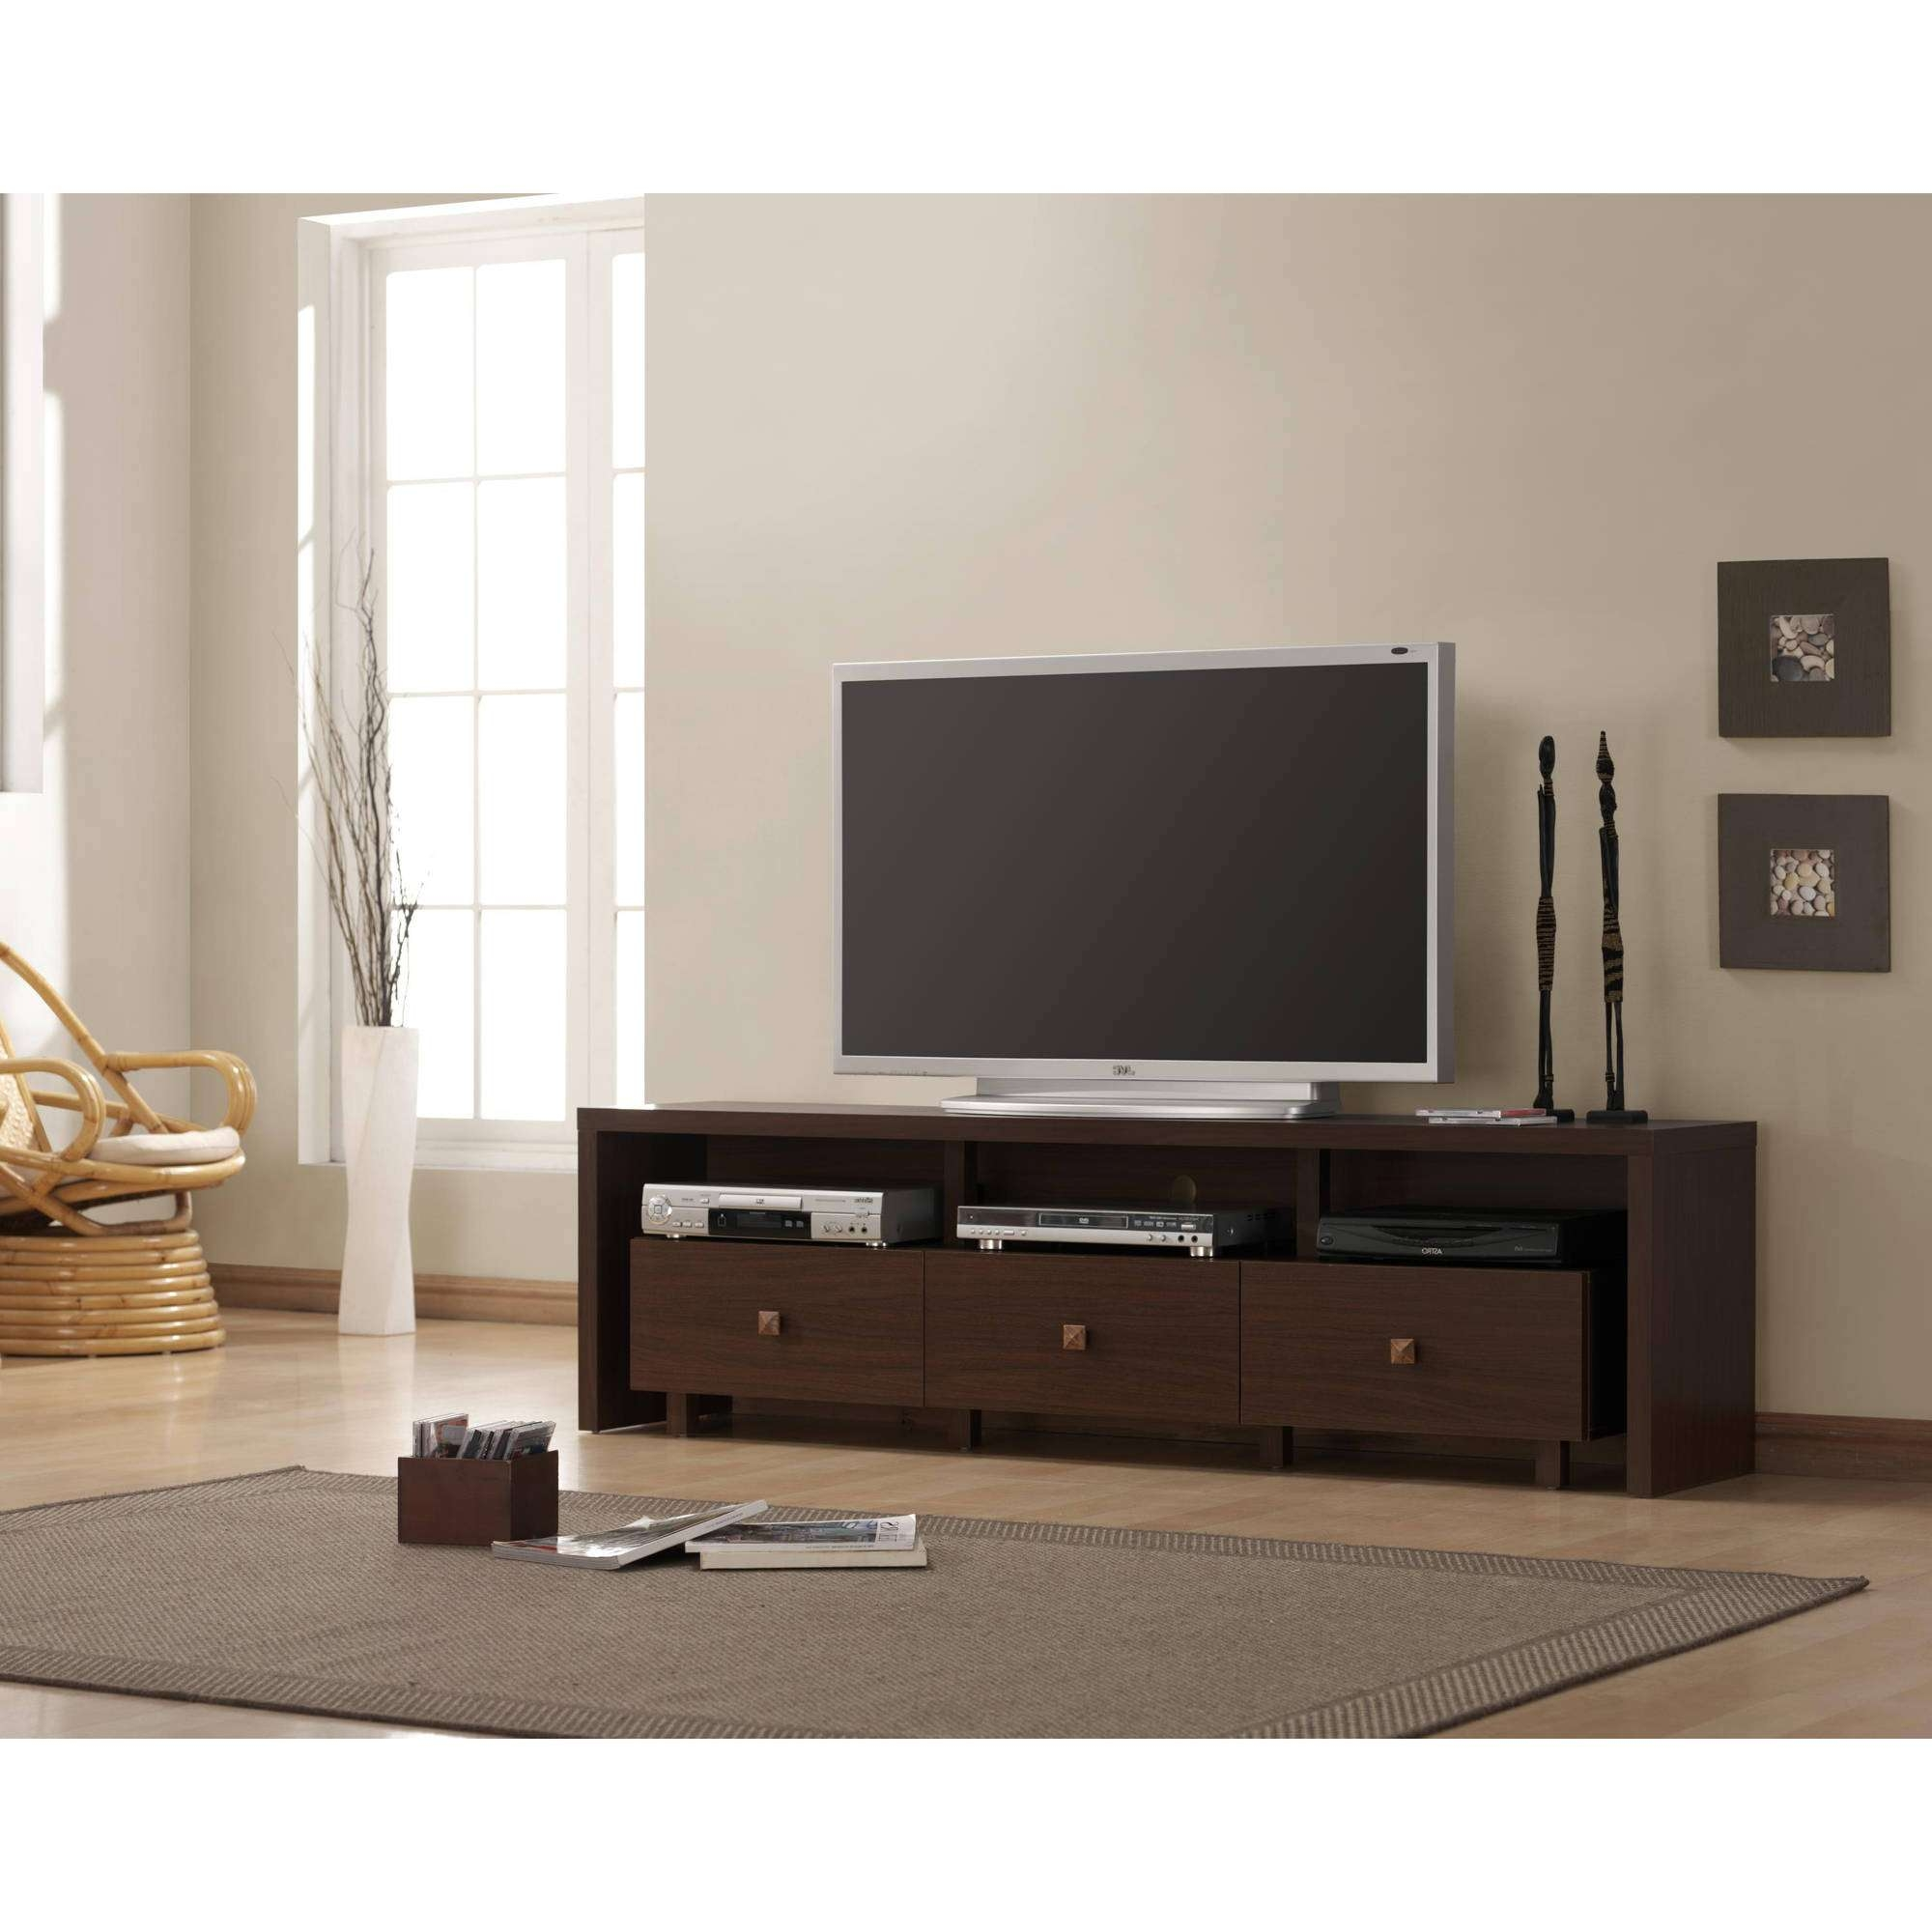 Inch Wide Sofa Sleeper Console Table60 Table Long Futon Beds Tv With Regard To Long Tv Stands (View 15 of 15)